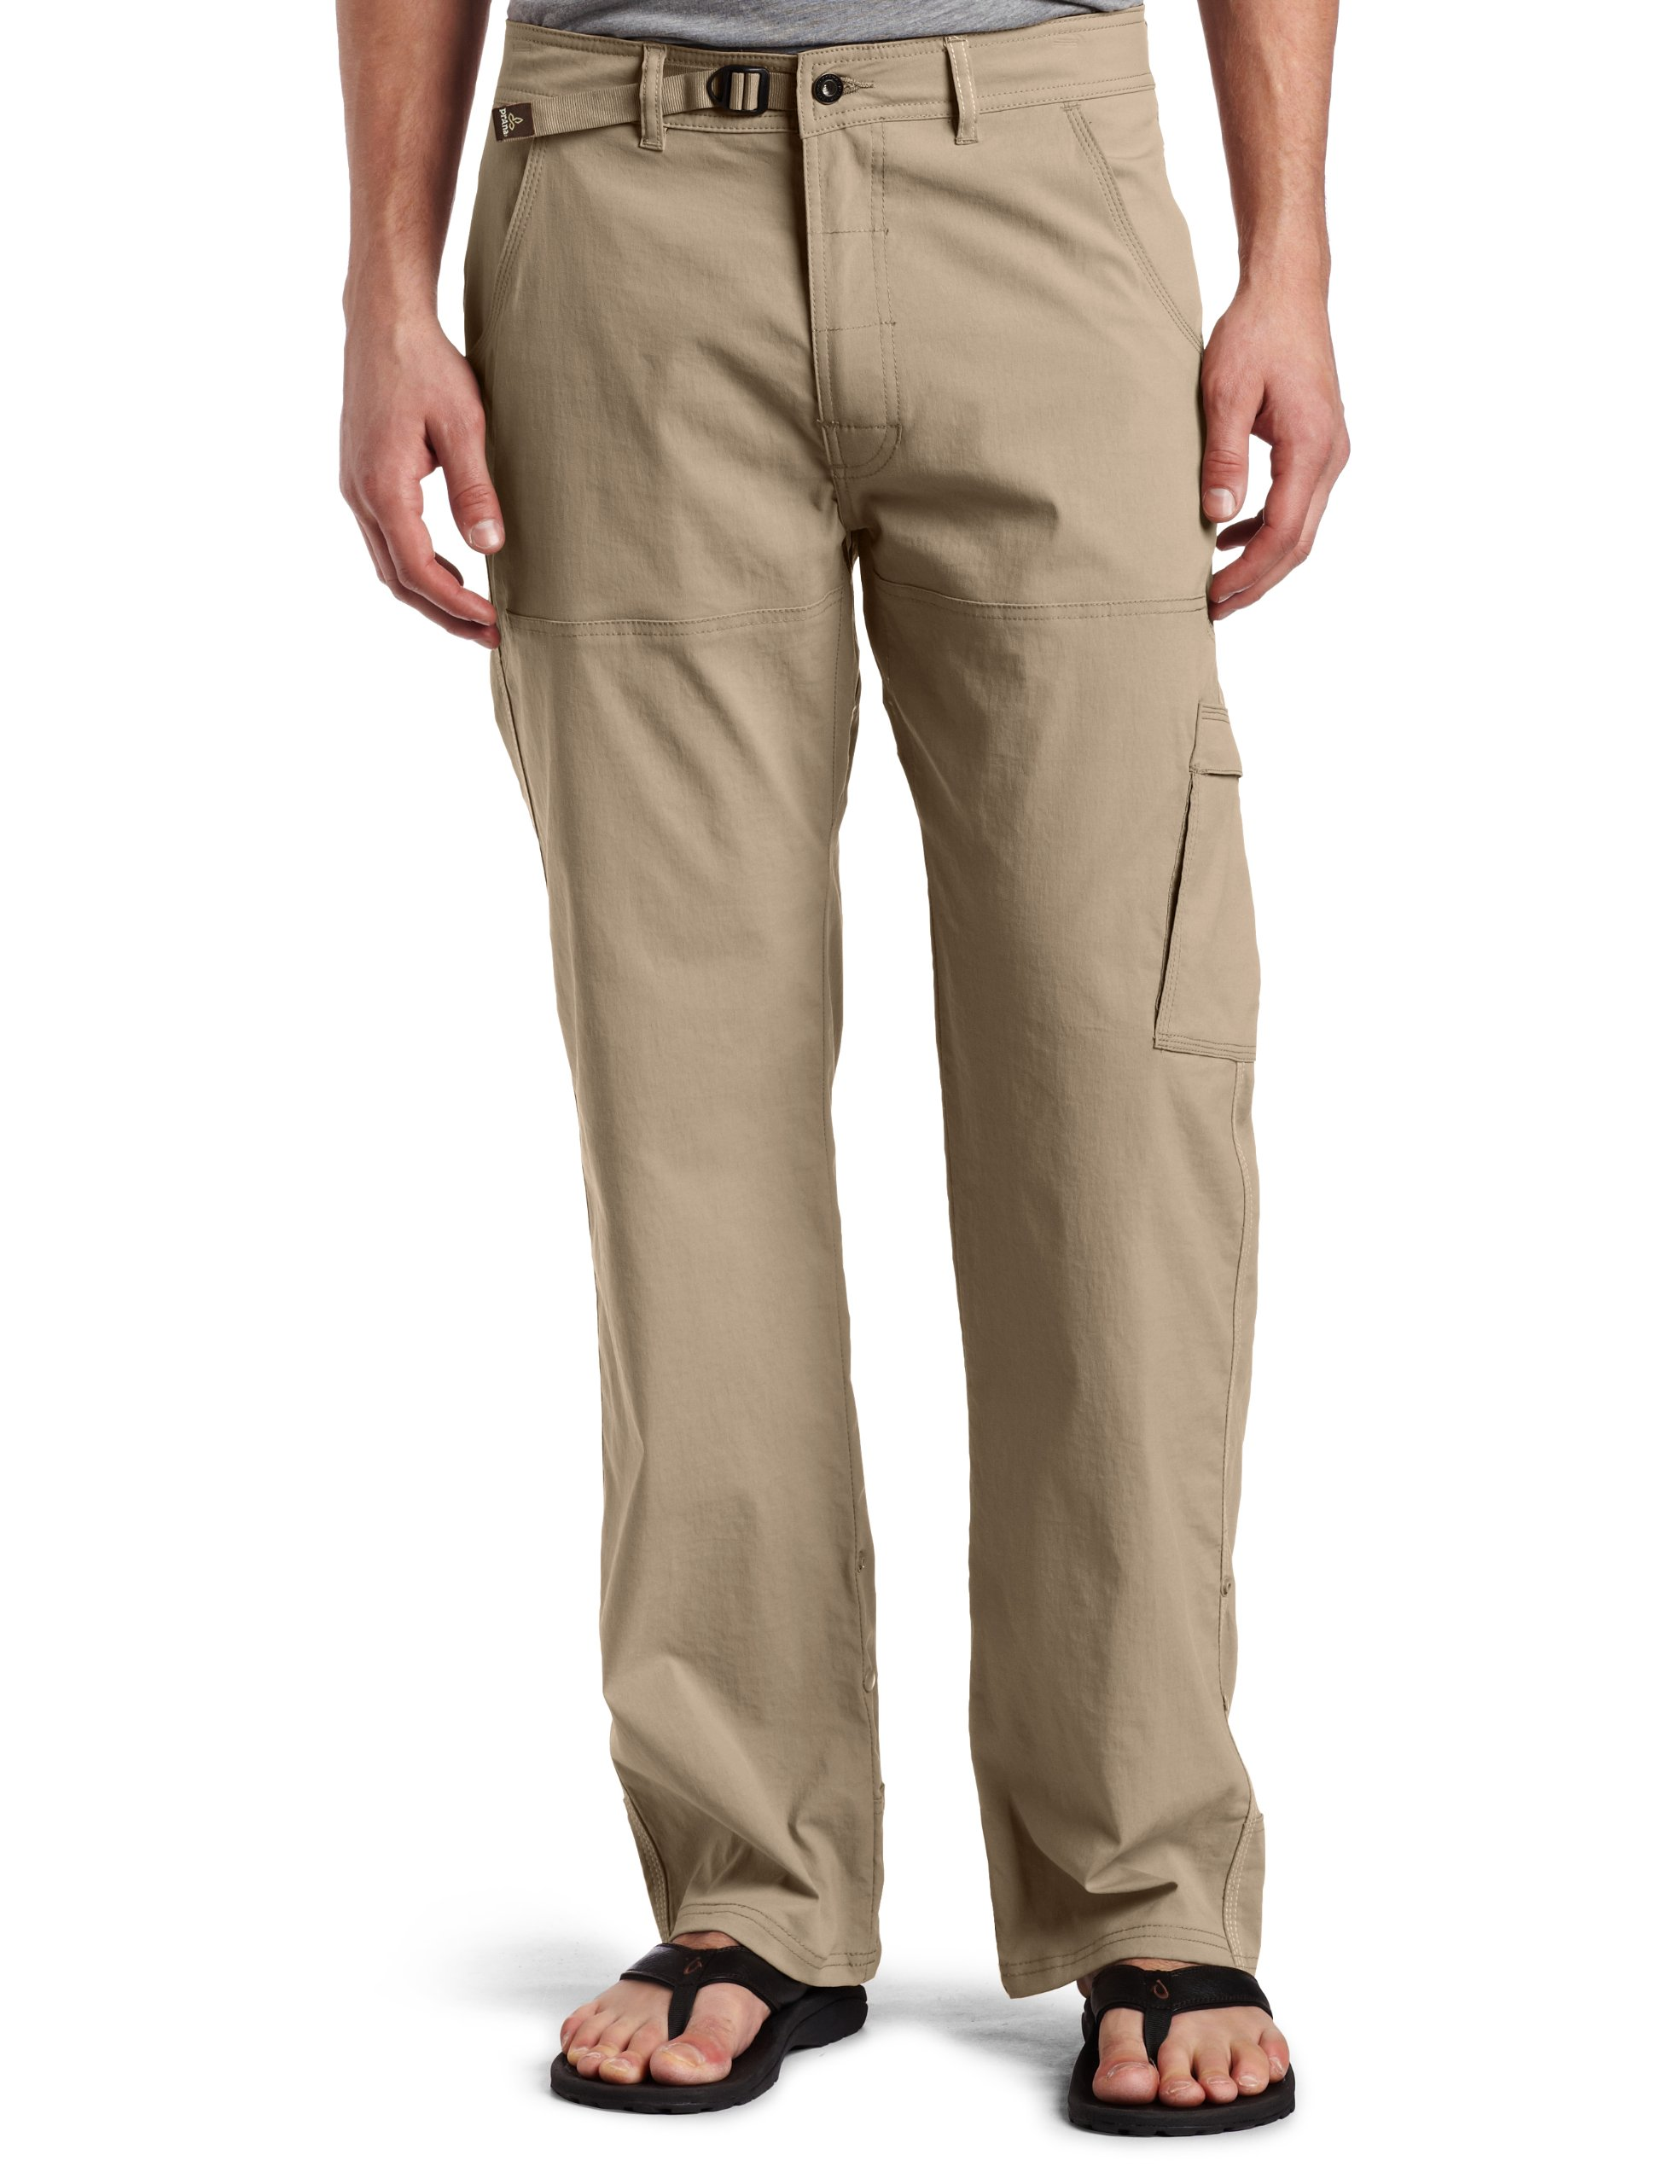 prAna Men's Stretch Zion Inseam, Dark Khaki, 32W 32L